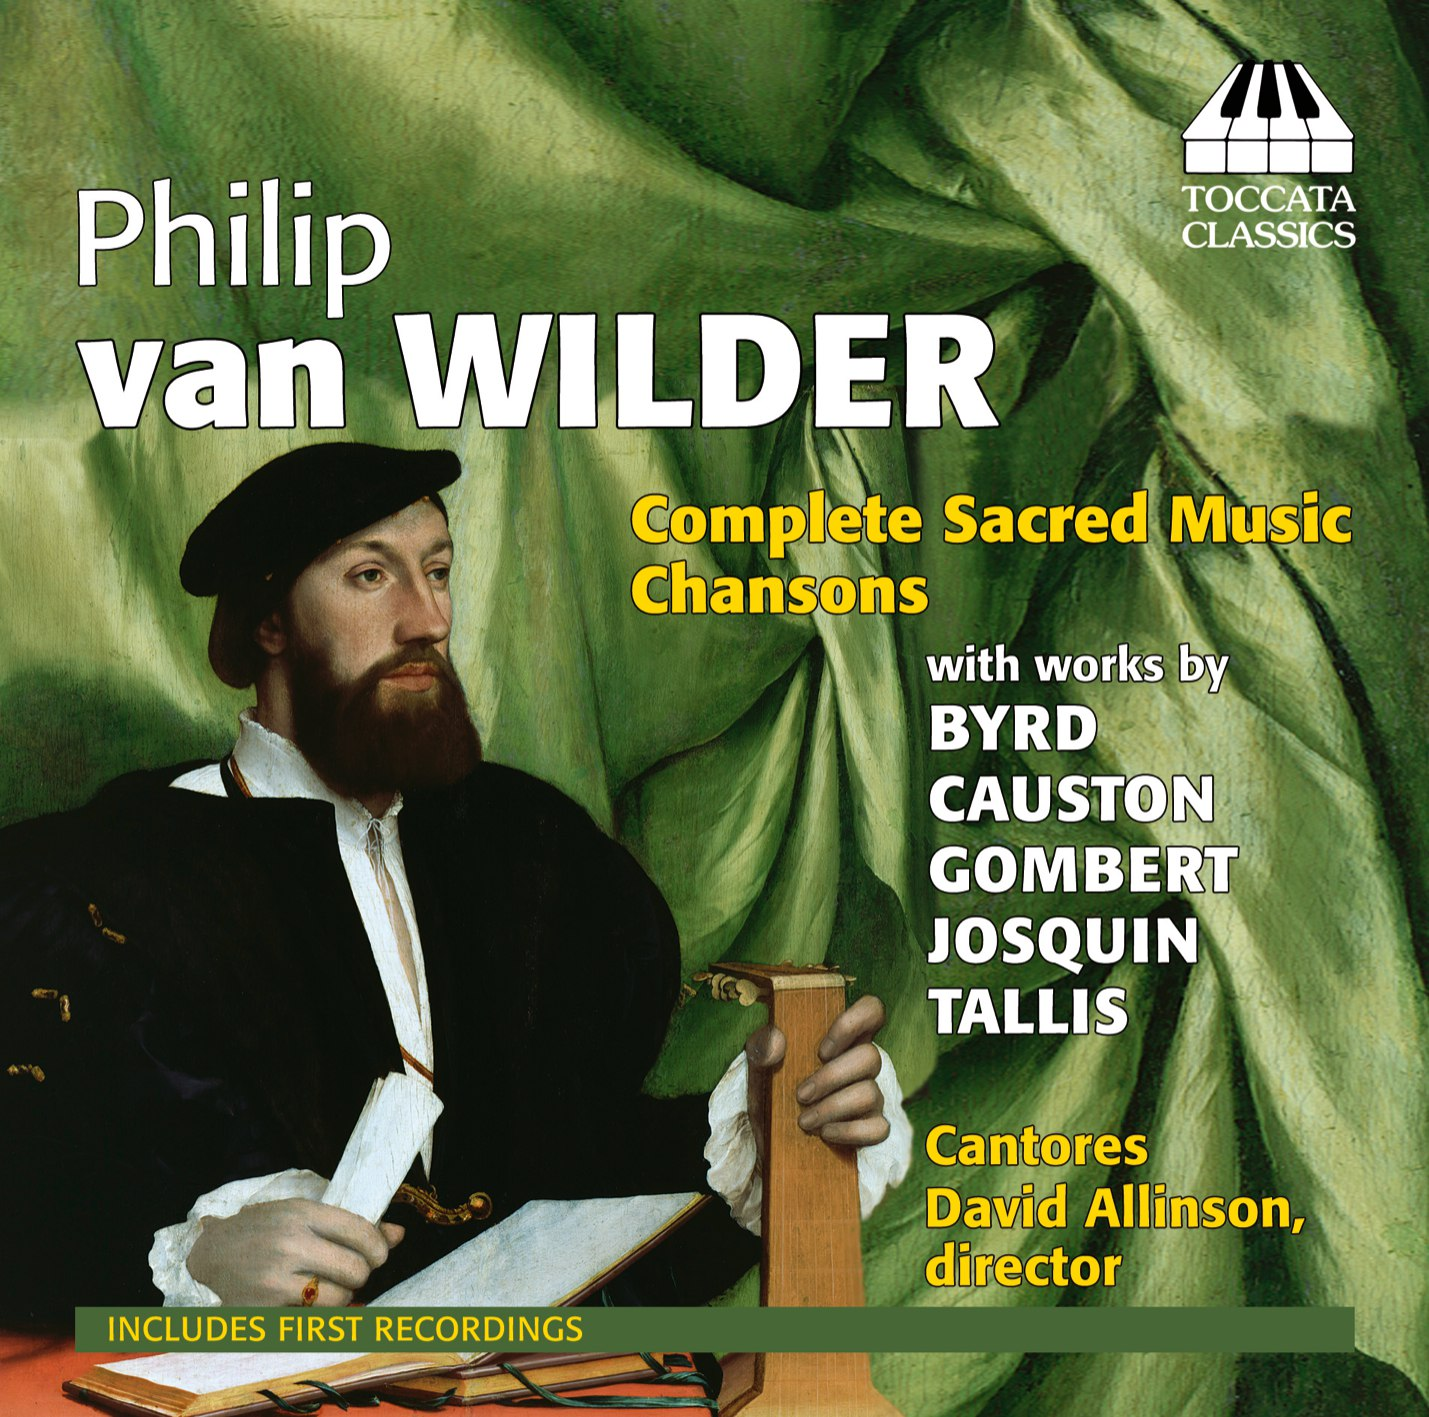 Philip van Wilder: Complete Sacred Music Chansons